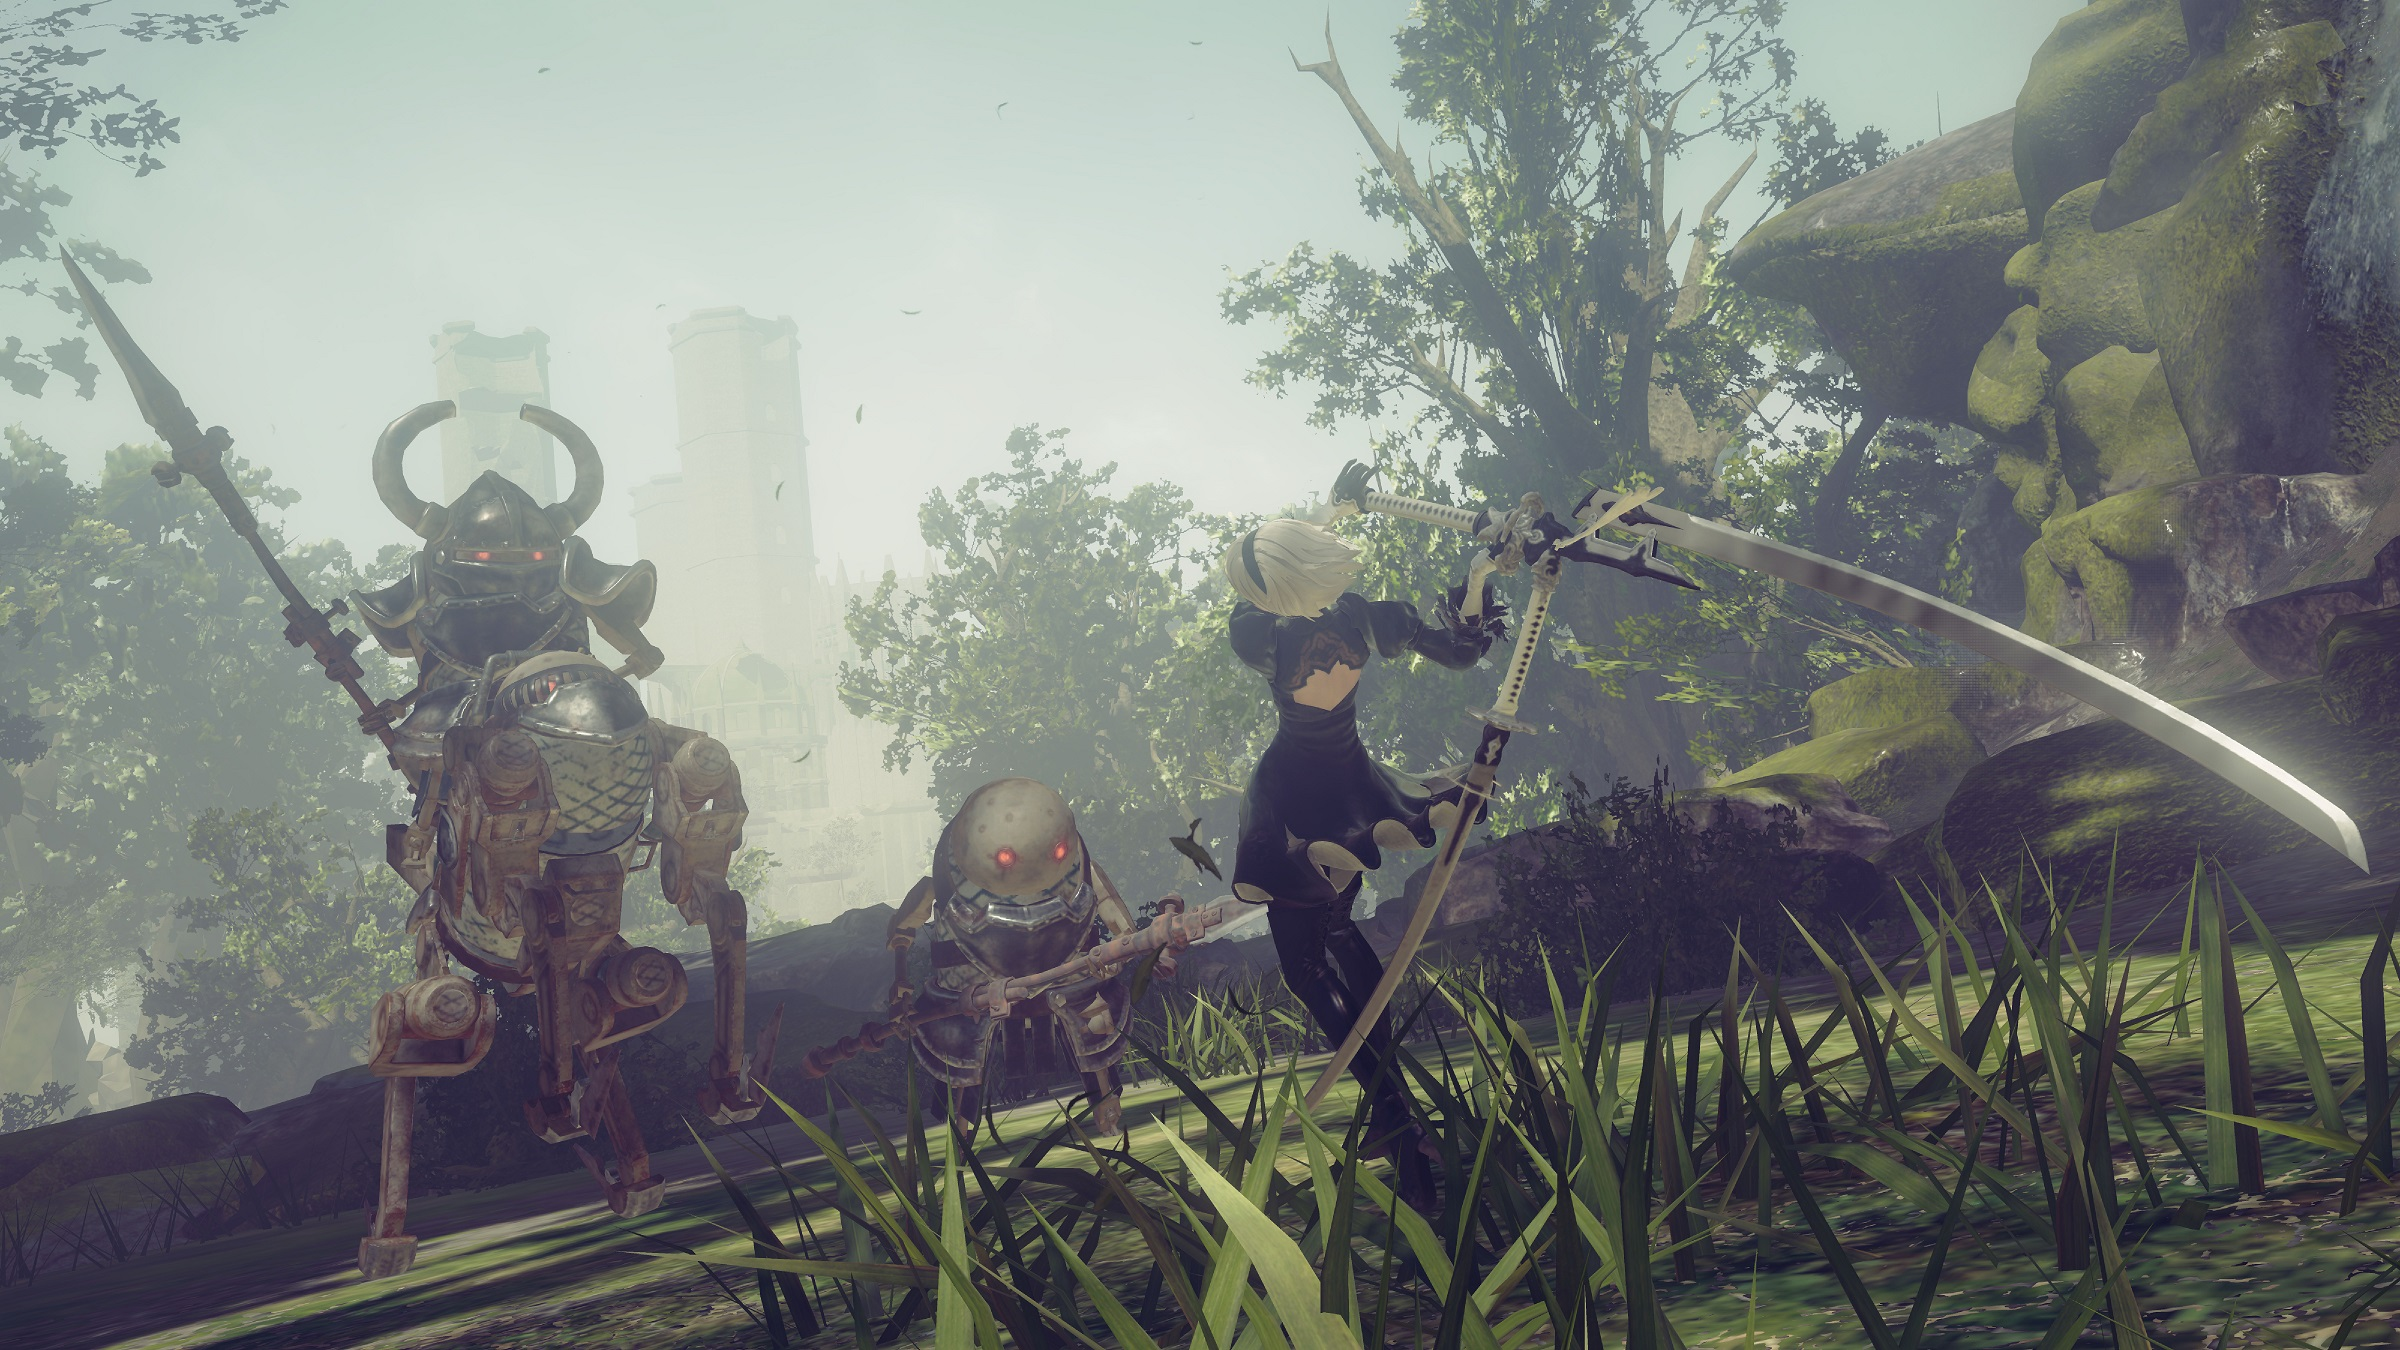 nier automata forest screenshots released � capsule computers